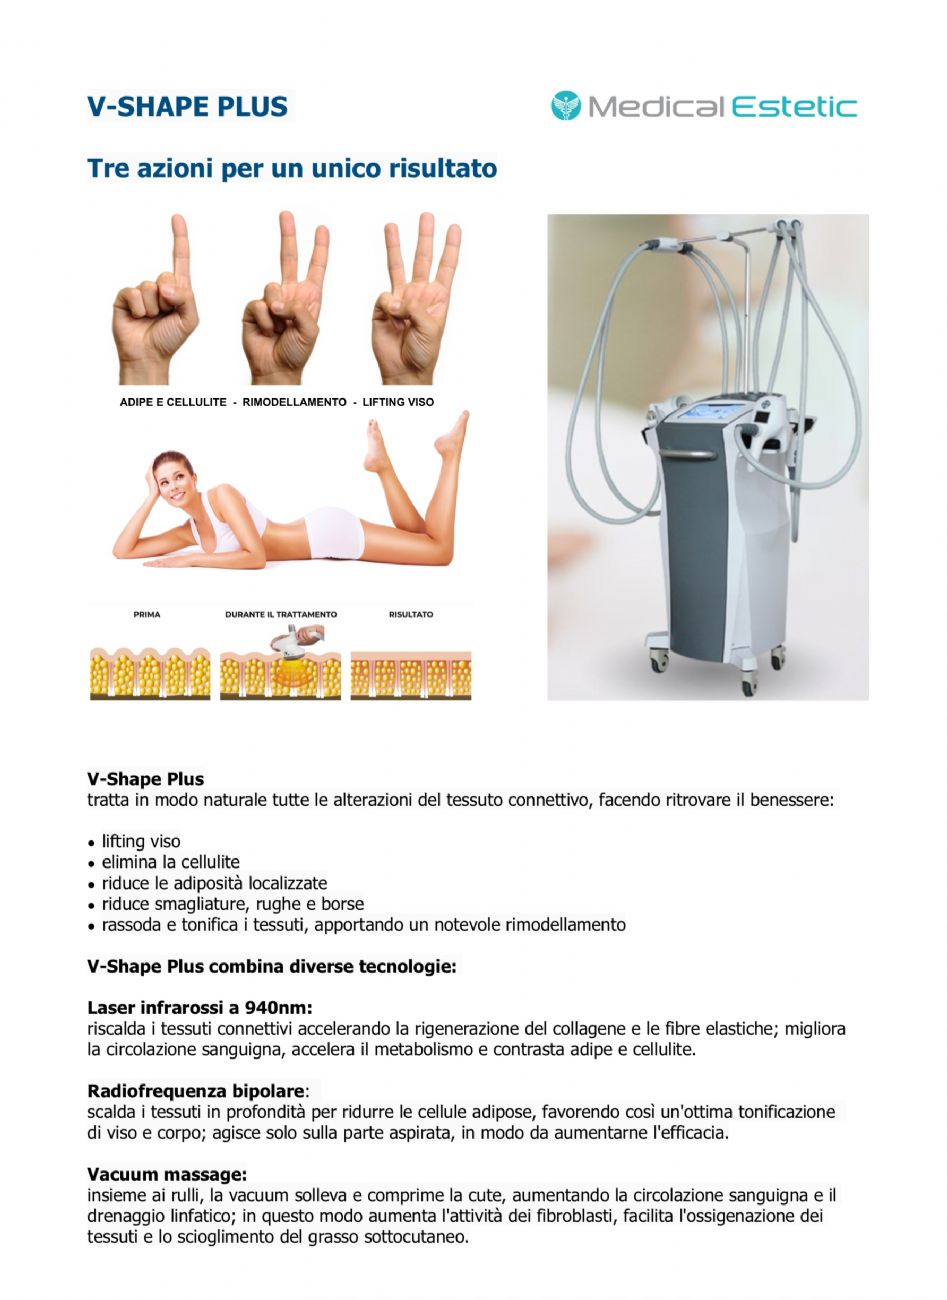 V Shape massagio endodermico 4 manipoli 6 testine + radiofrequenza 1Mhz